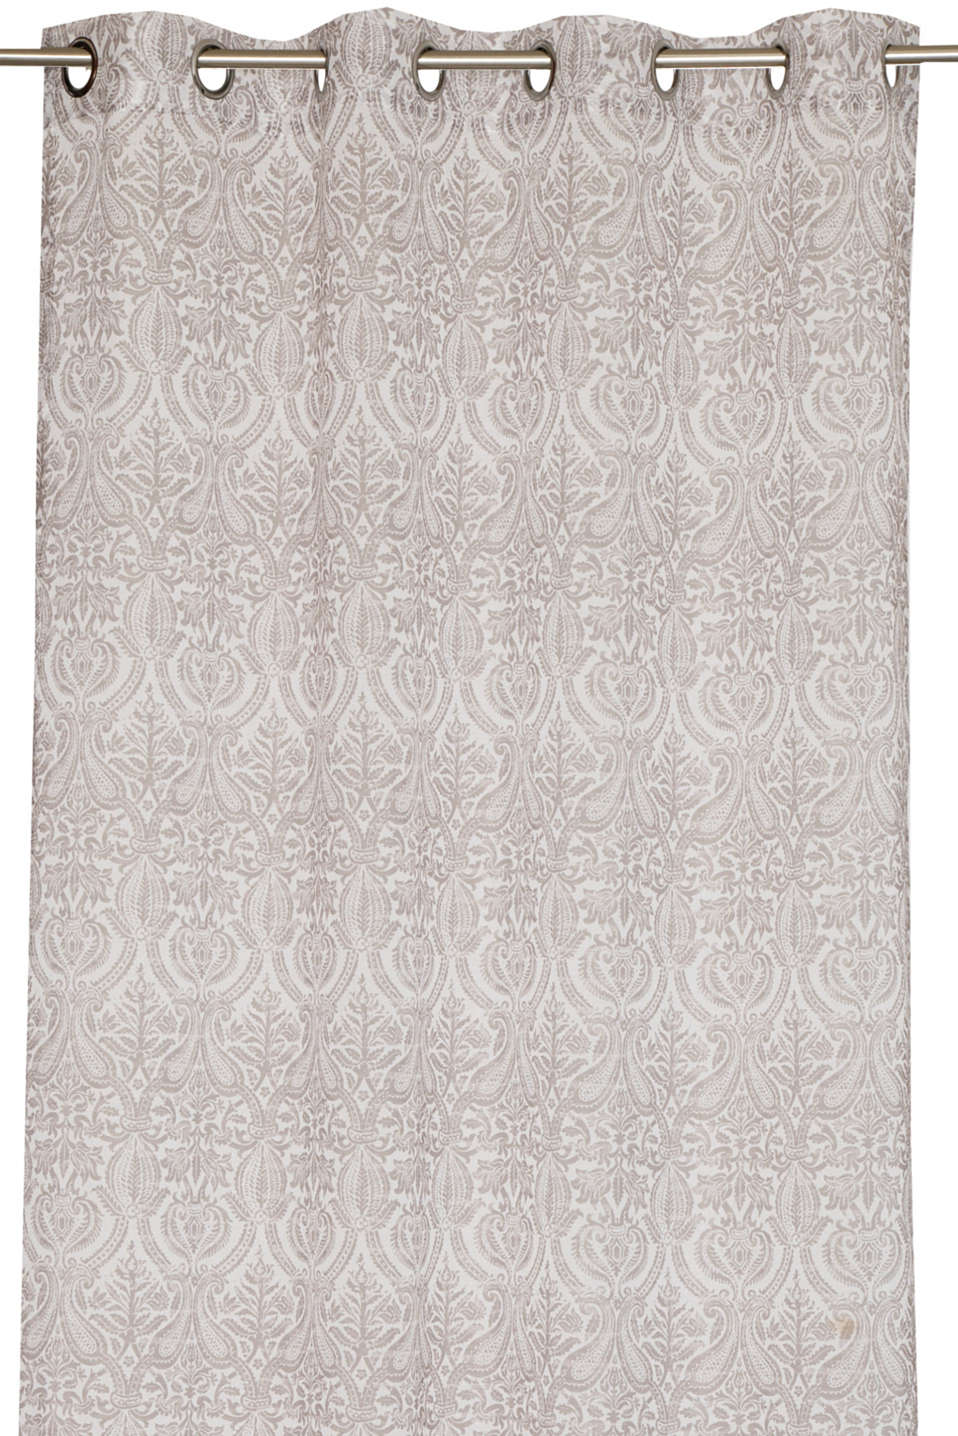 Esprit - Eyelet curtain with an ornamental pattern